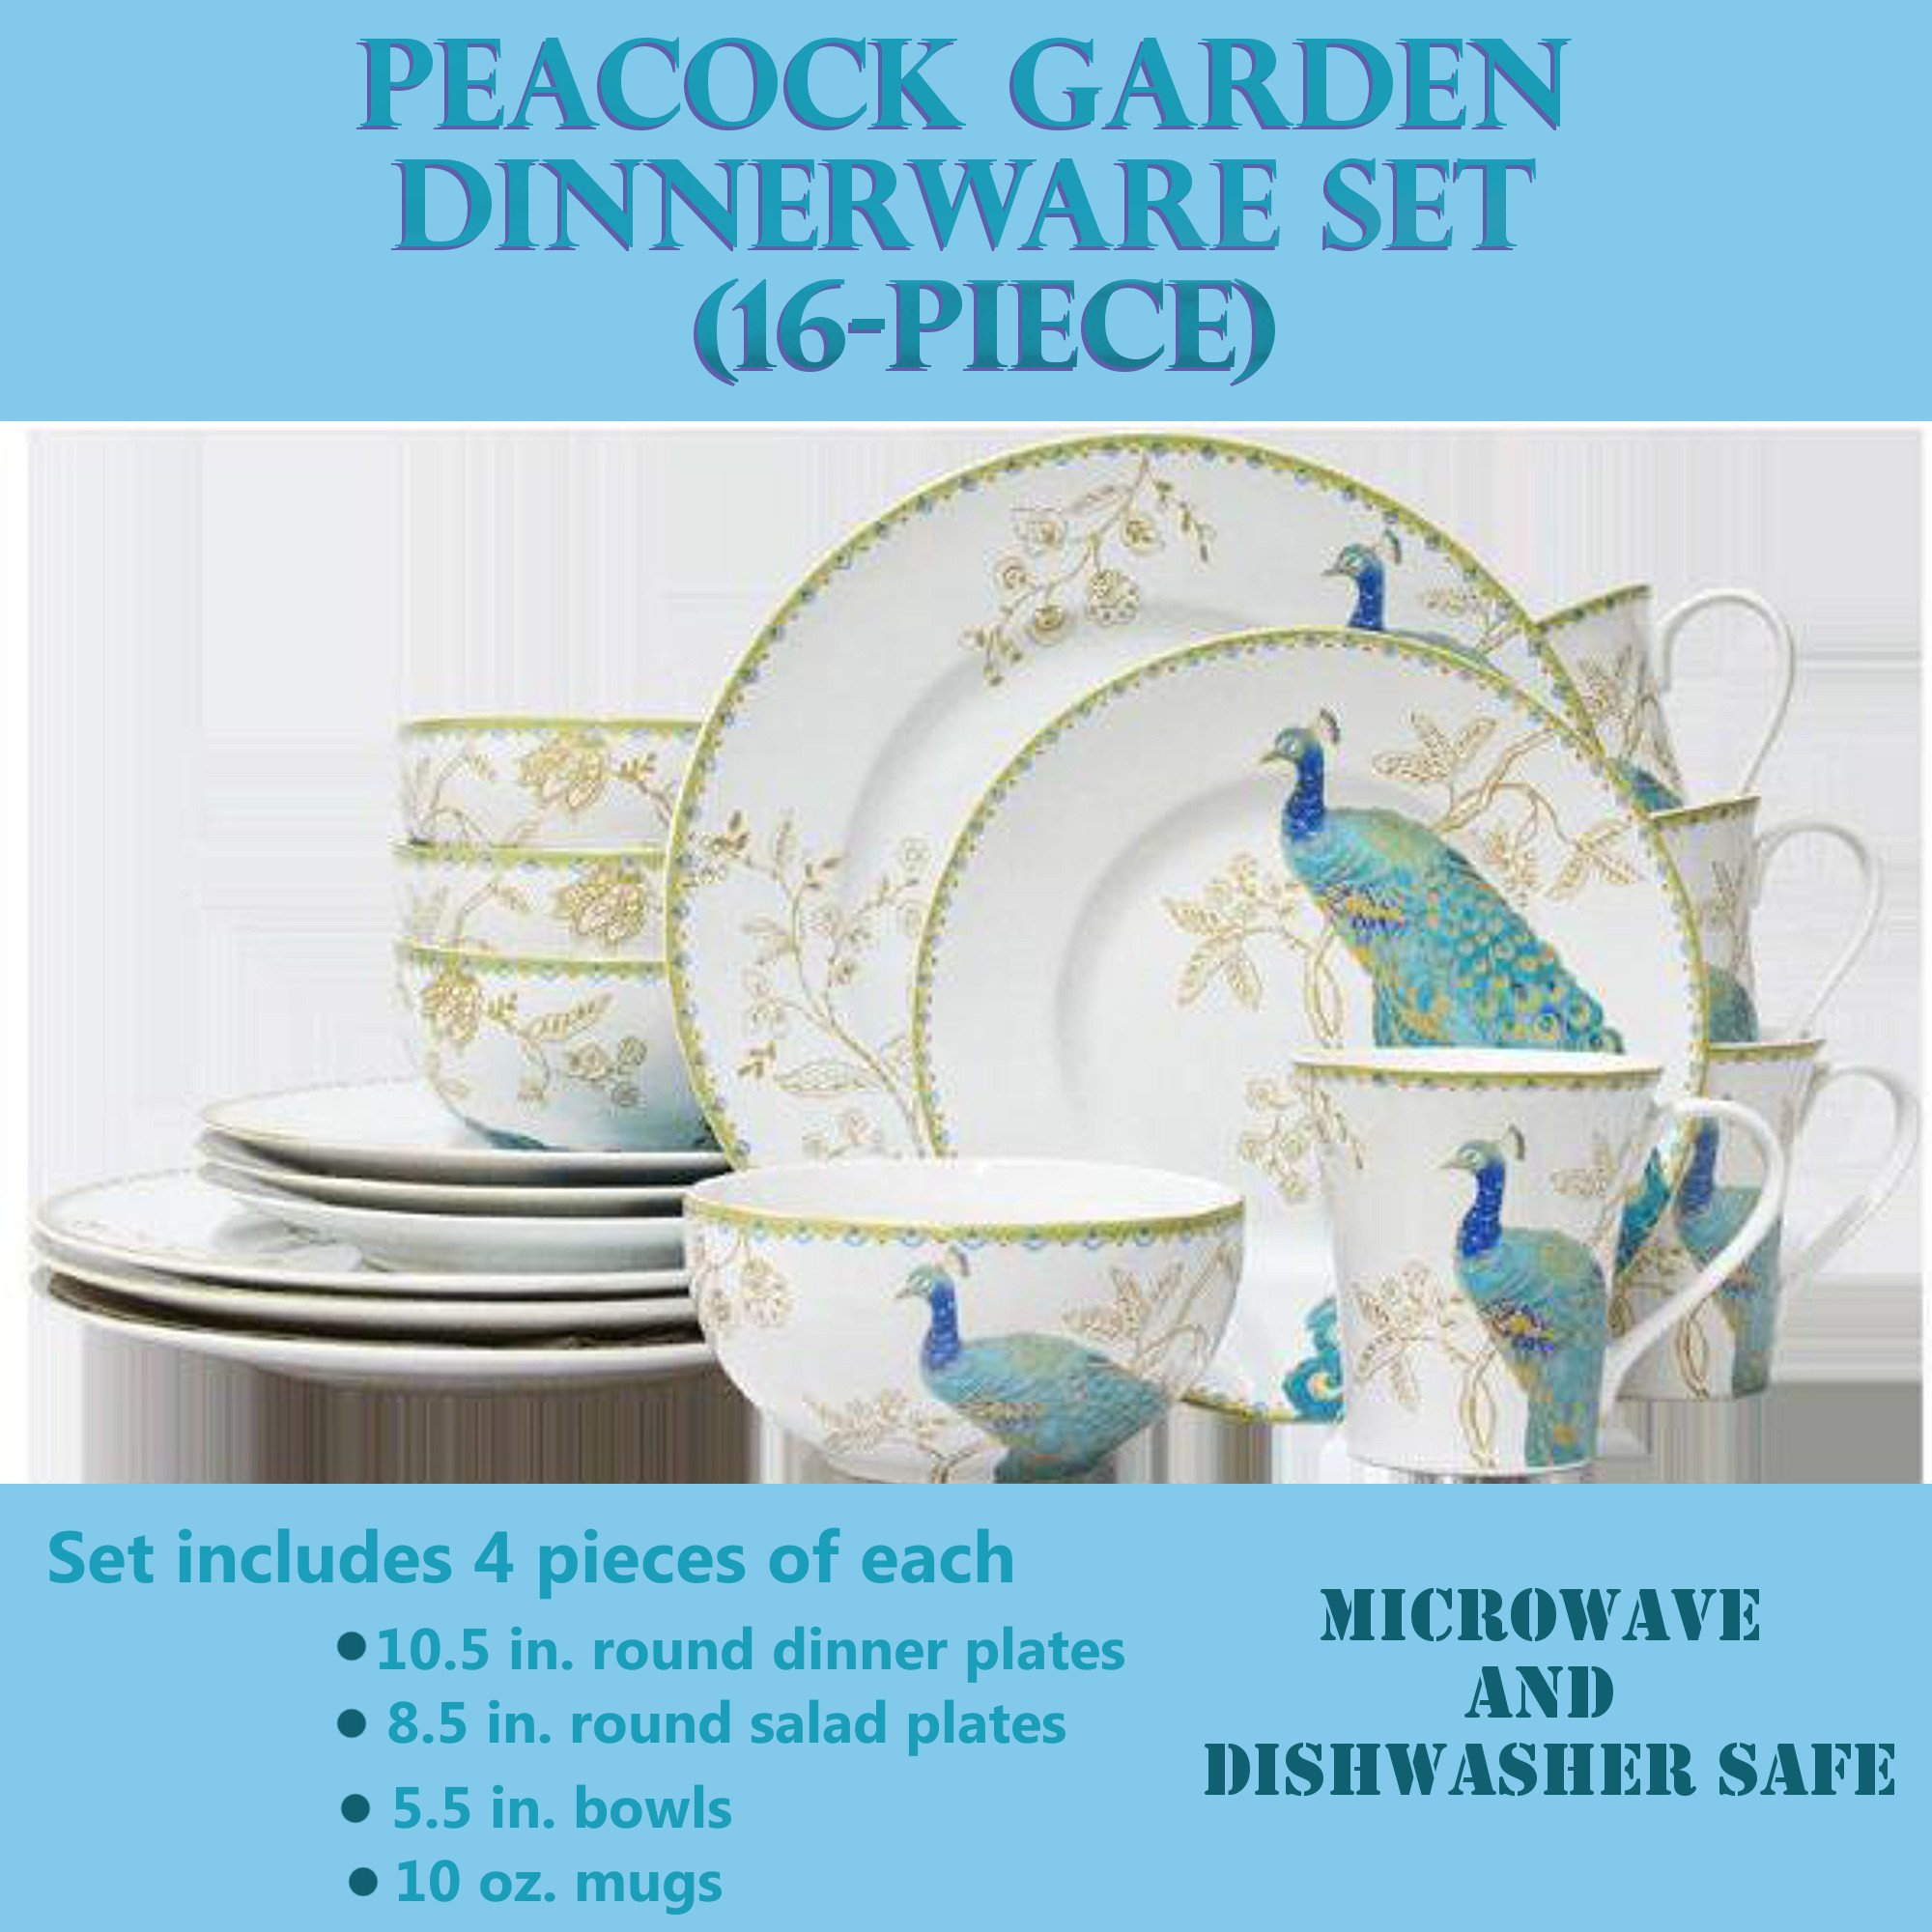 (16-Piece) Durable Porcelain Peacock Garden Dinnerware Set, Includes 4 Pieces of Each: 10.5 In. Round Dinner Plates; 8.5 In. Round Salad Plates; 5.5 In. Bowls; 10 Oz. Mugs, Perfect For Everyday Dining by 222 Fifth